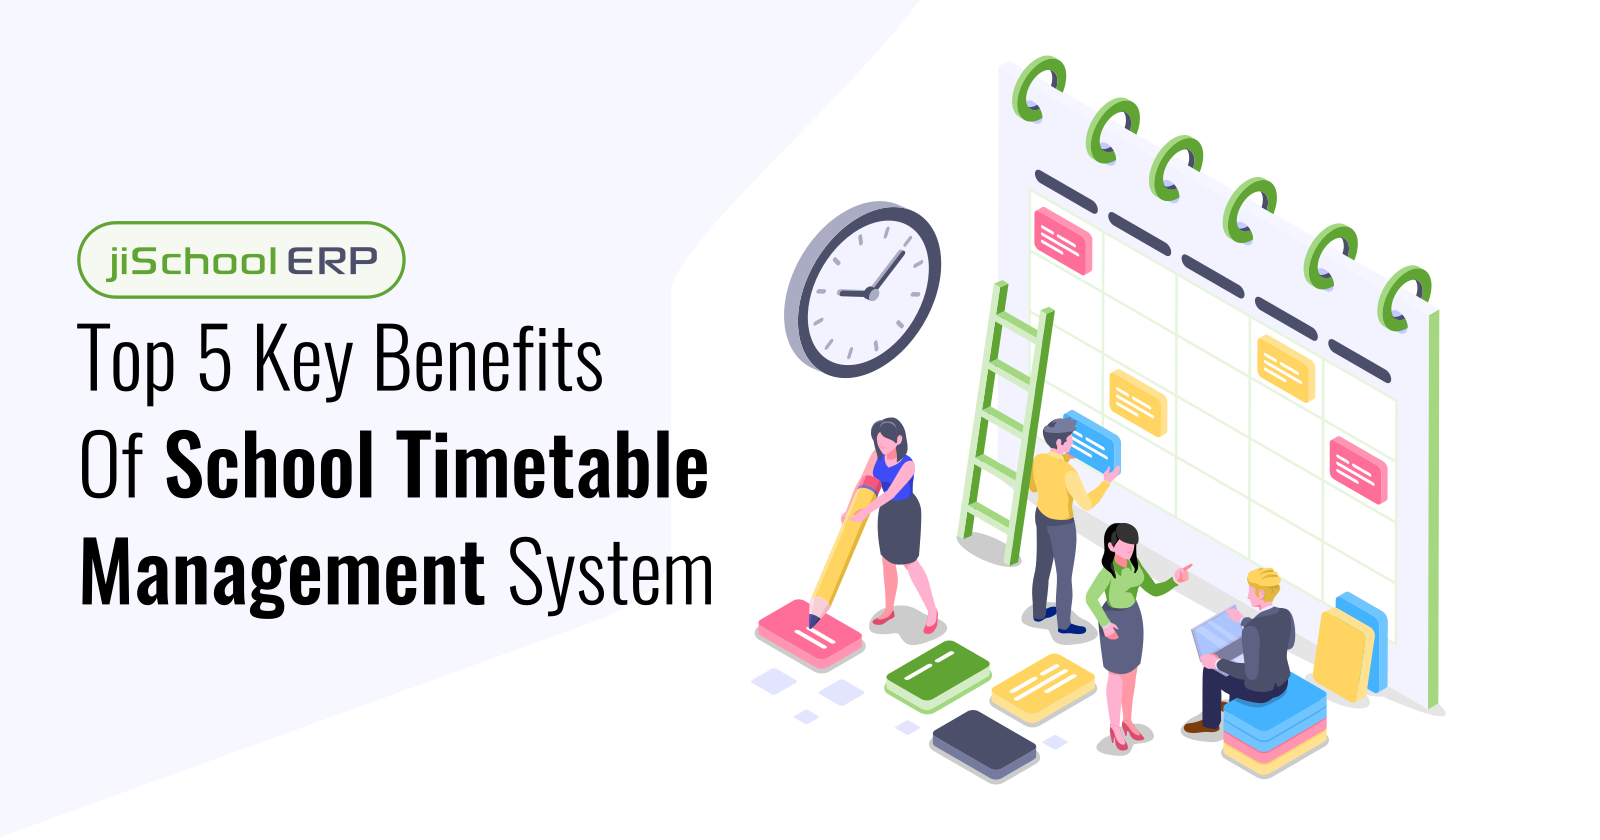 Top 5 Key Benefits Of School Timetable Management System